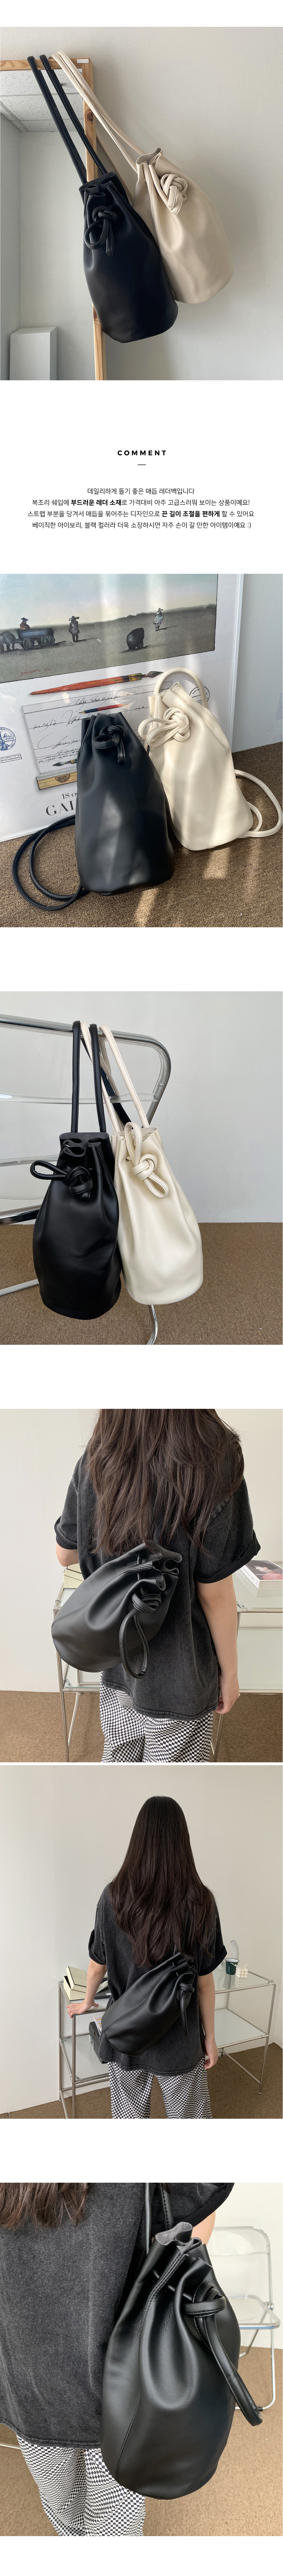 Lespon bottle knotted leather cross-body bag